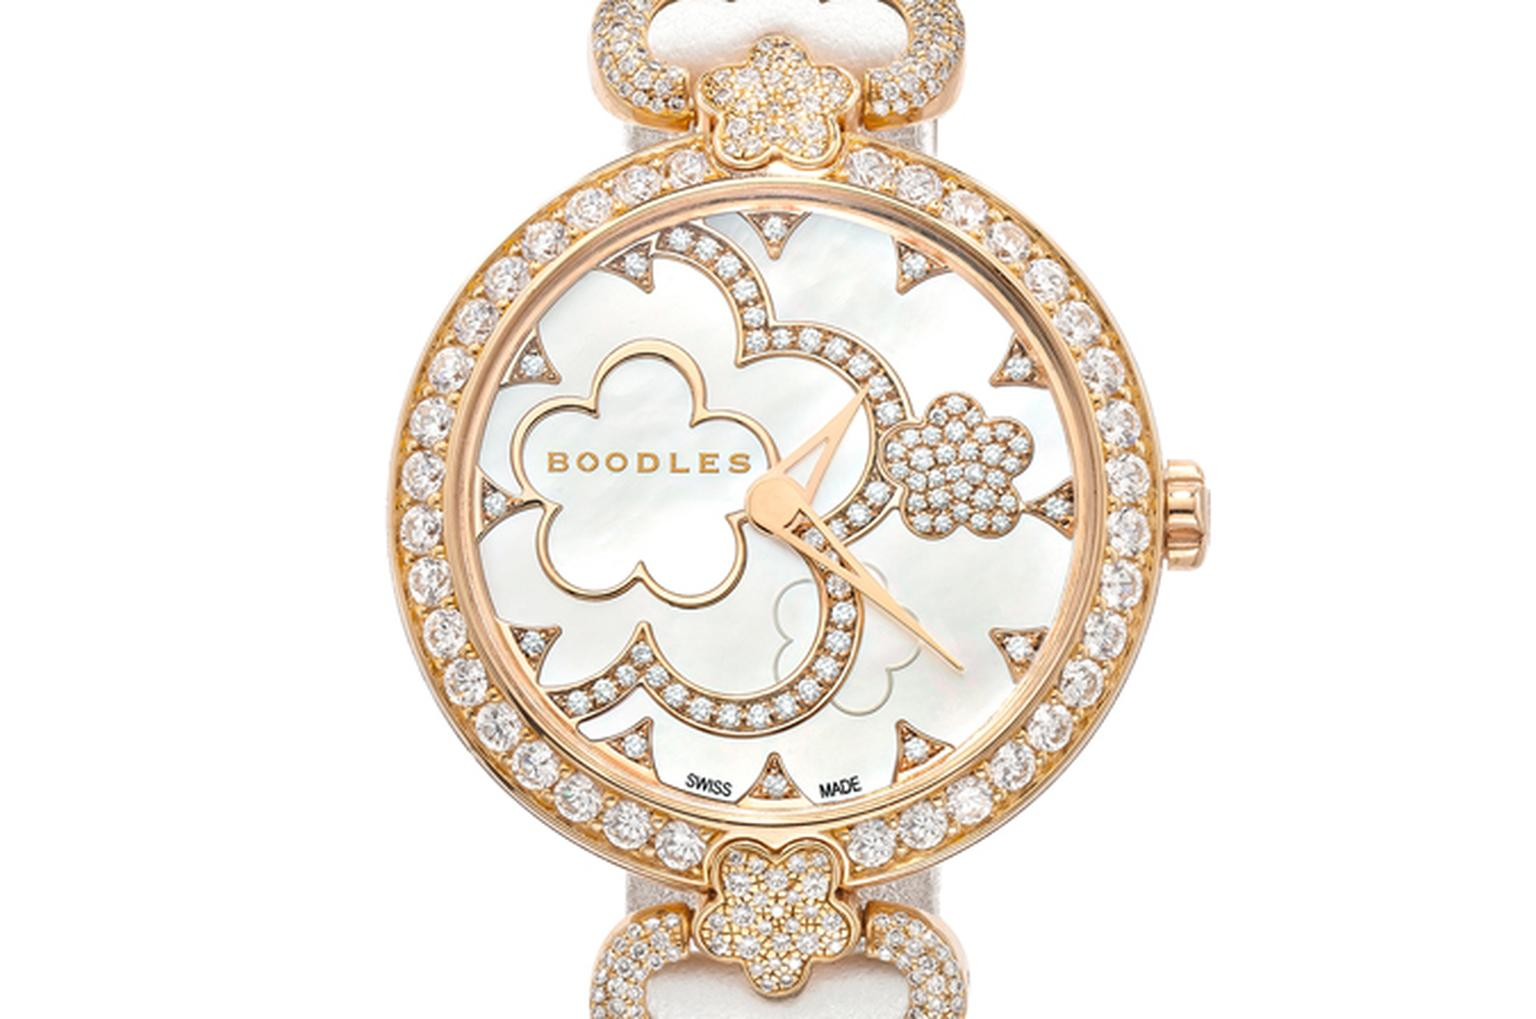 Boodles -watch 3HP